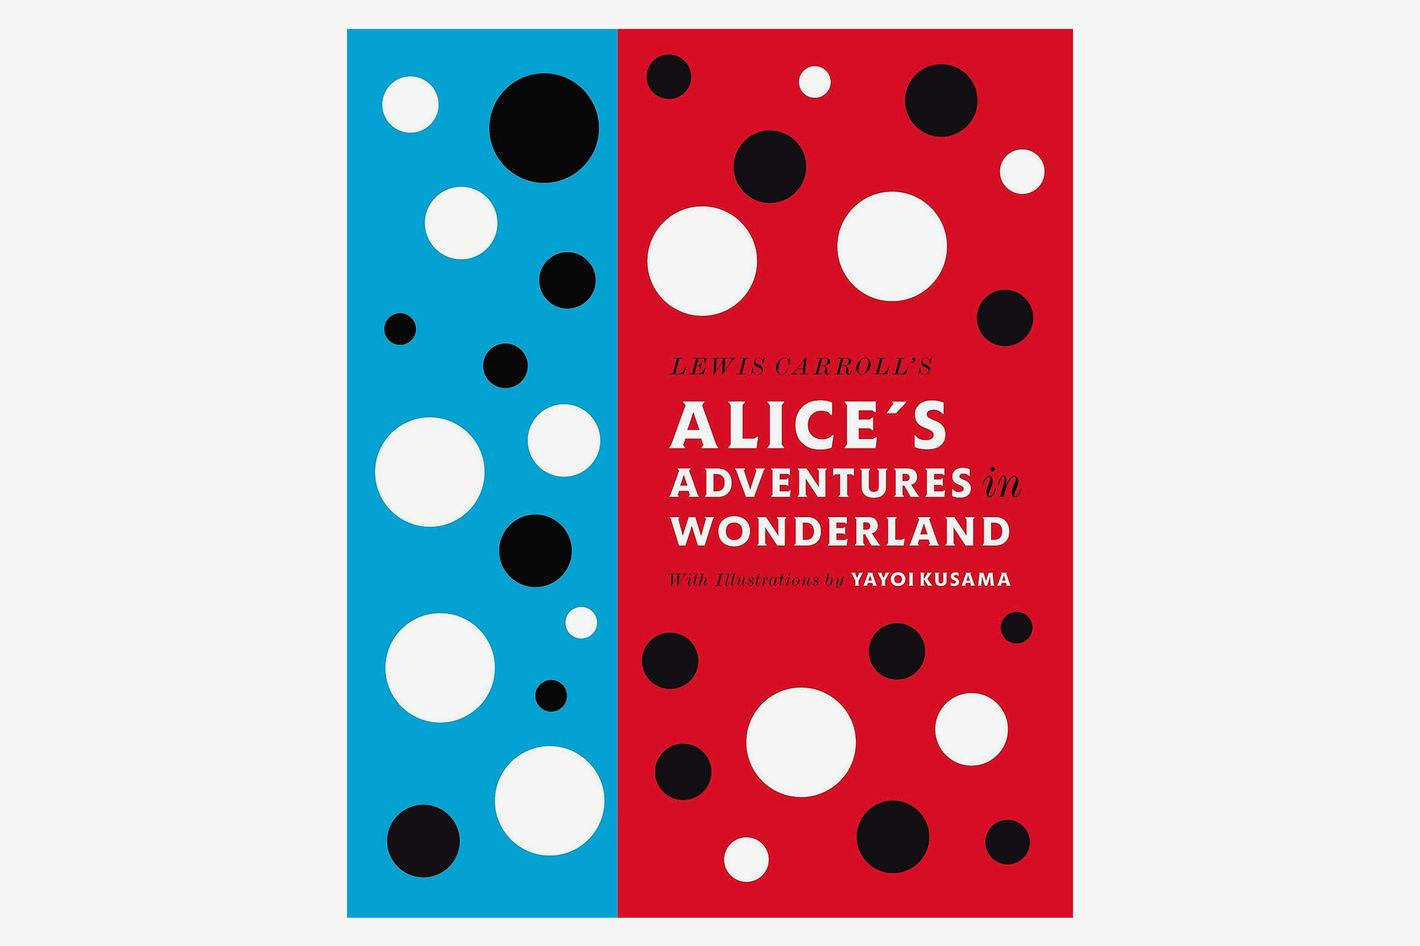 Lewis Carroll's Alice's Adventures in Wonderland, artwork by Yayoi Kusama